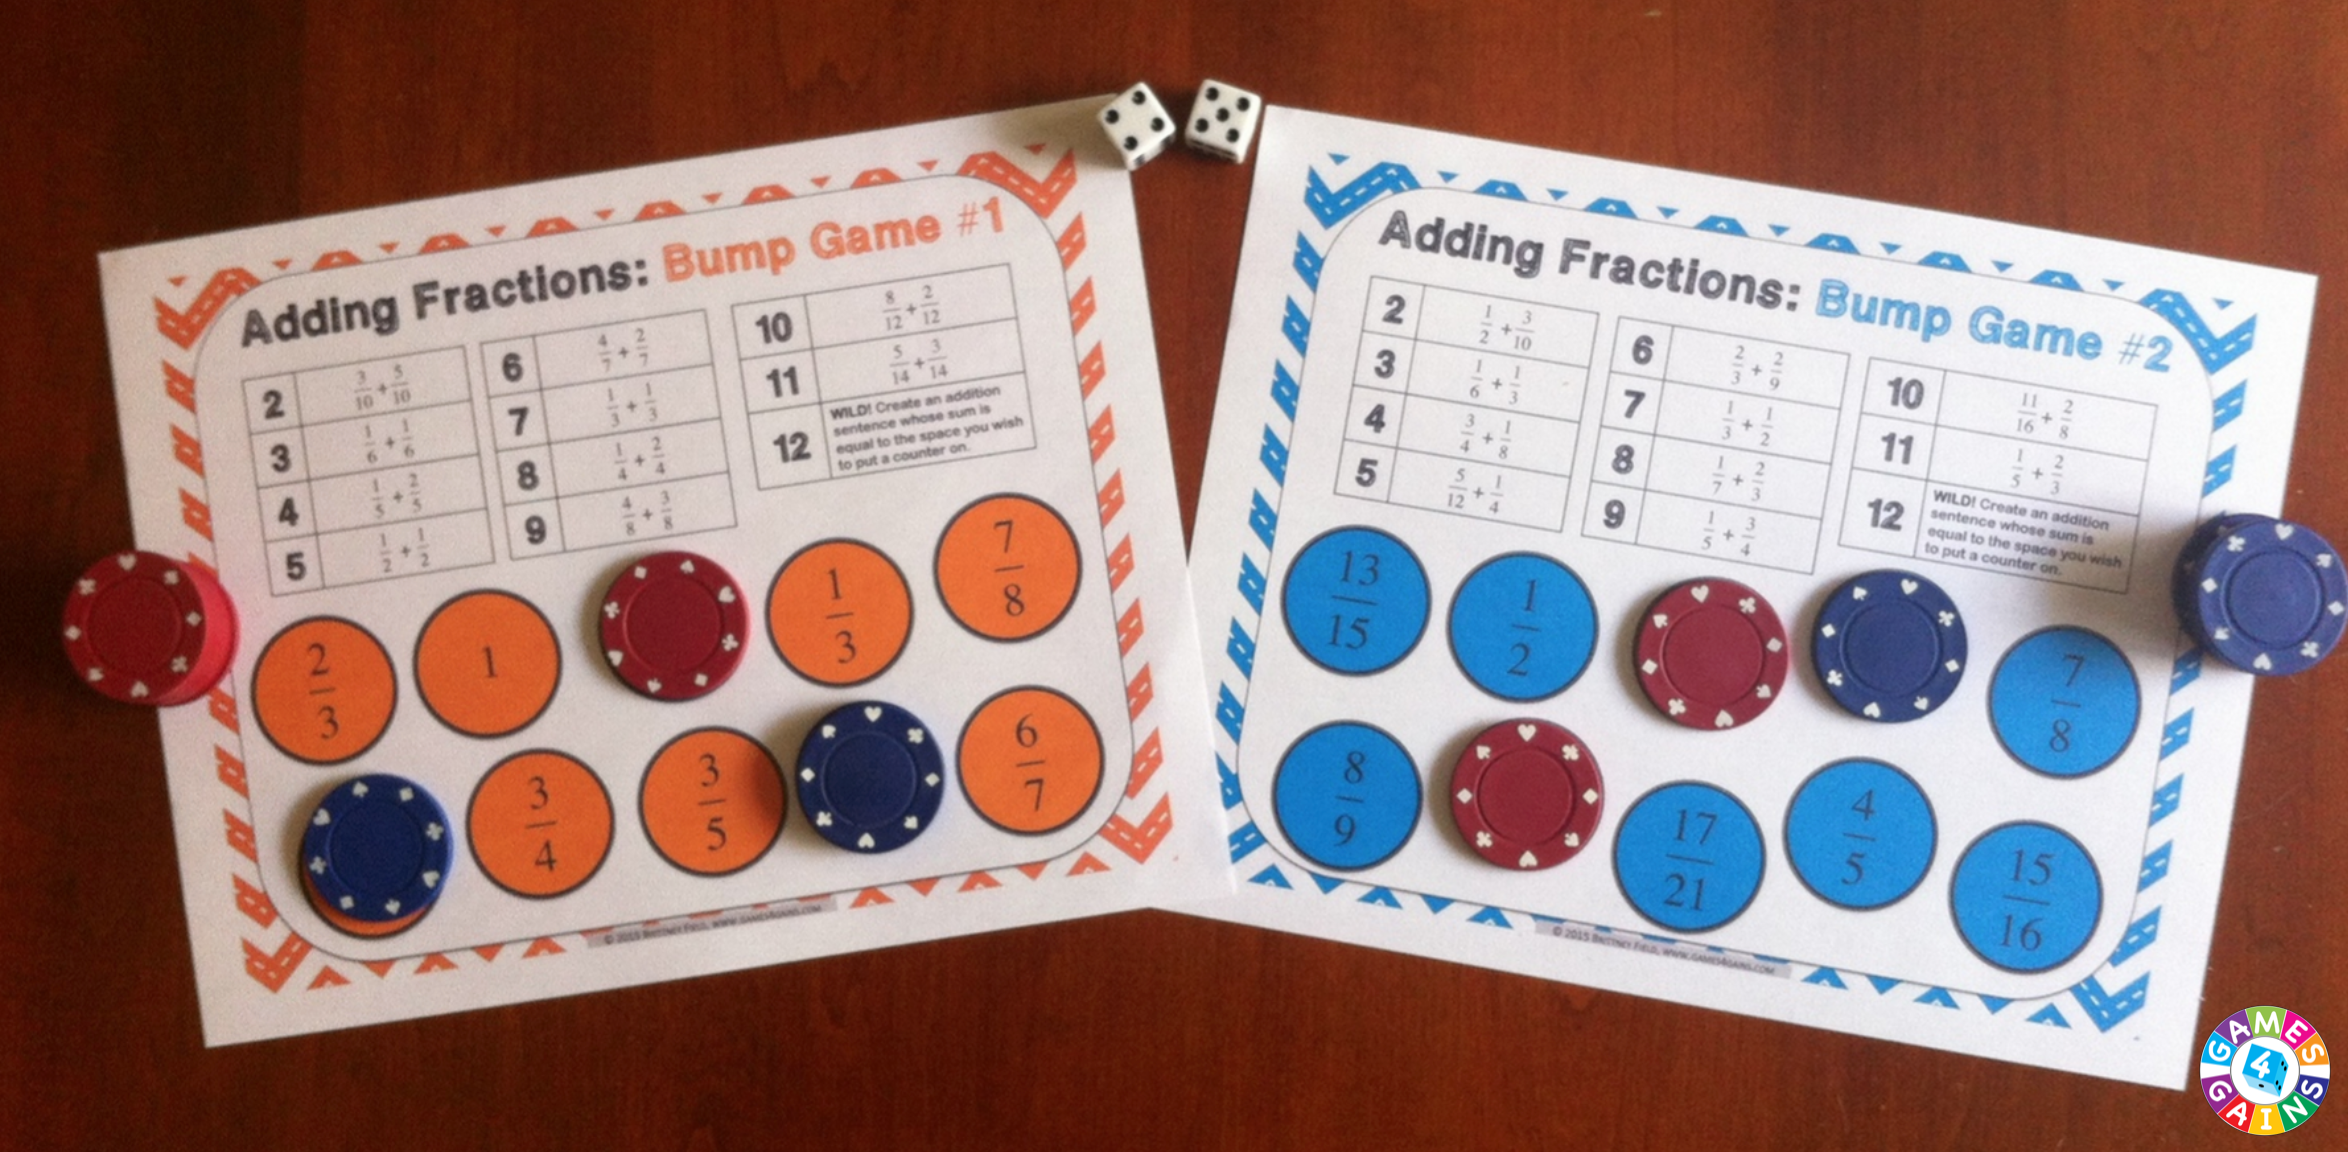 These free adding and subtracting fractions bump games are so simple to use, and take a minimal amount of prep. Simply print out the game sheet, get 2 dice, and 20 counters, and you'll be ready to go!